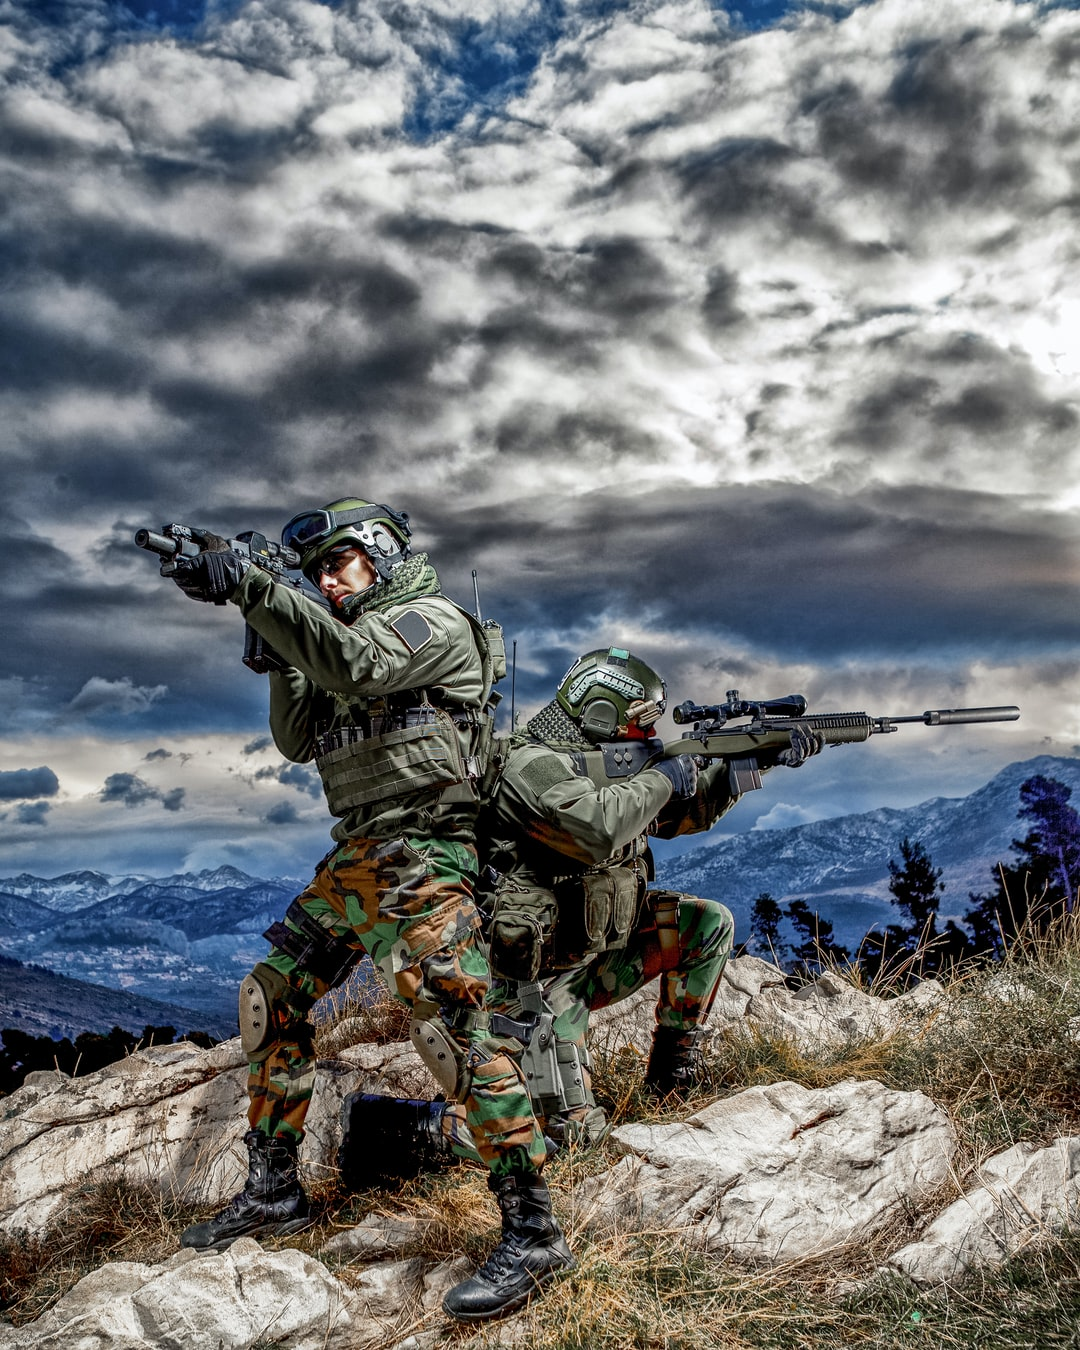 Two Soldiers with an Automatic Guns